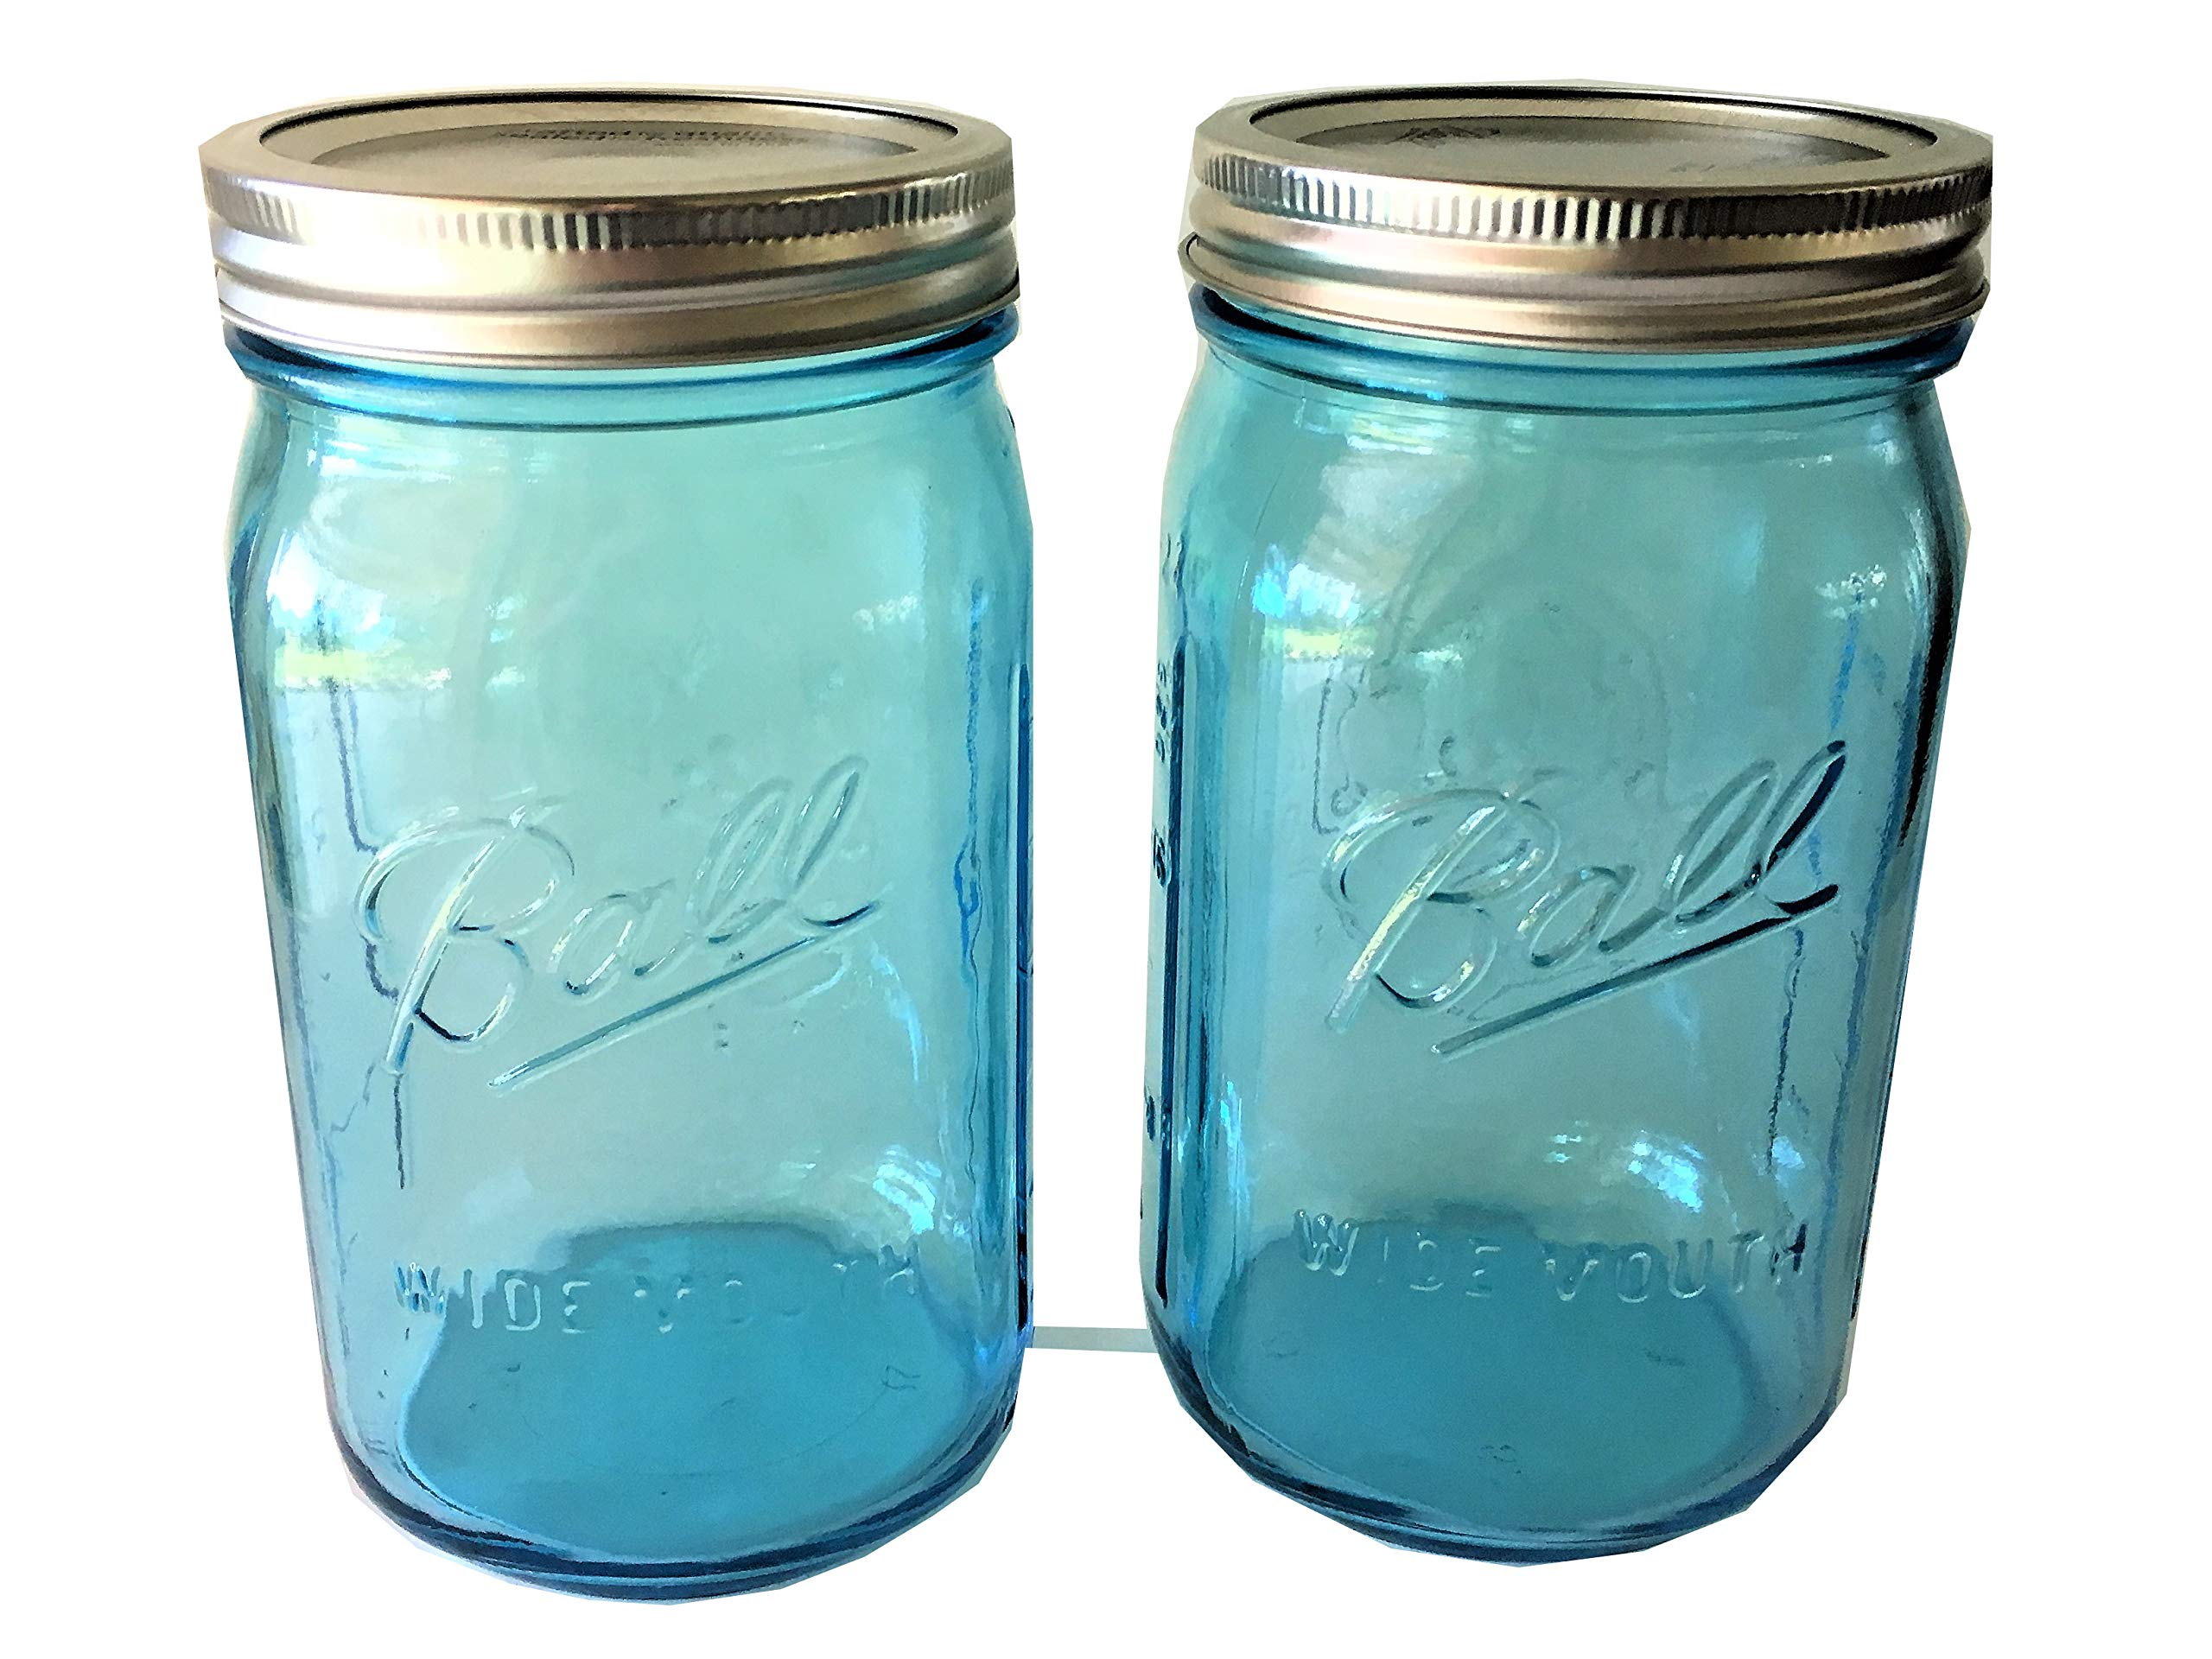 Ball Mason Jar-32 oz. Aqua Blue Glass Ball Collection Heritage Color Series-Set of 2